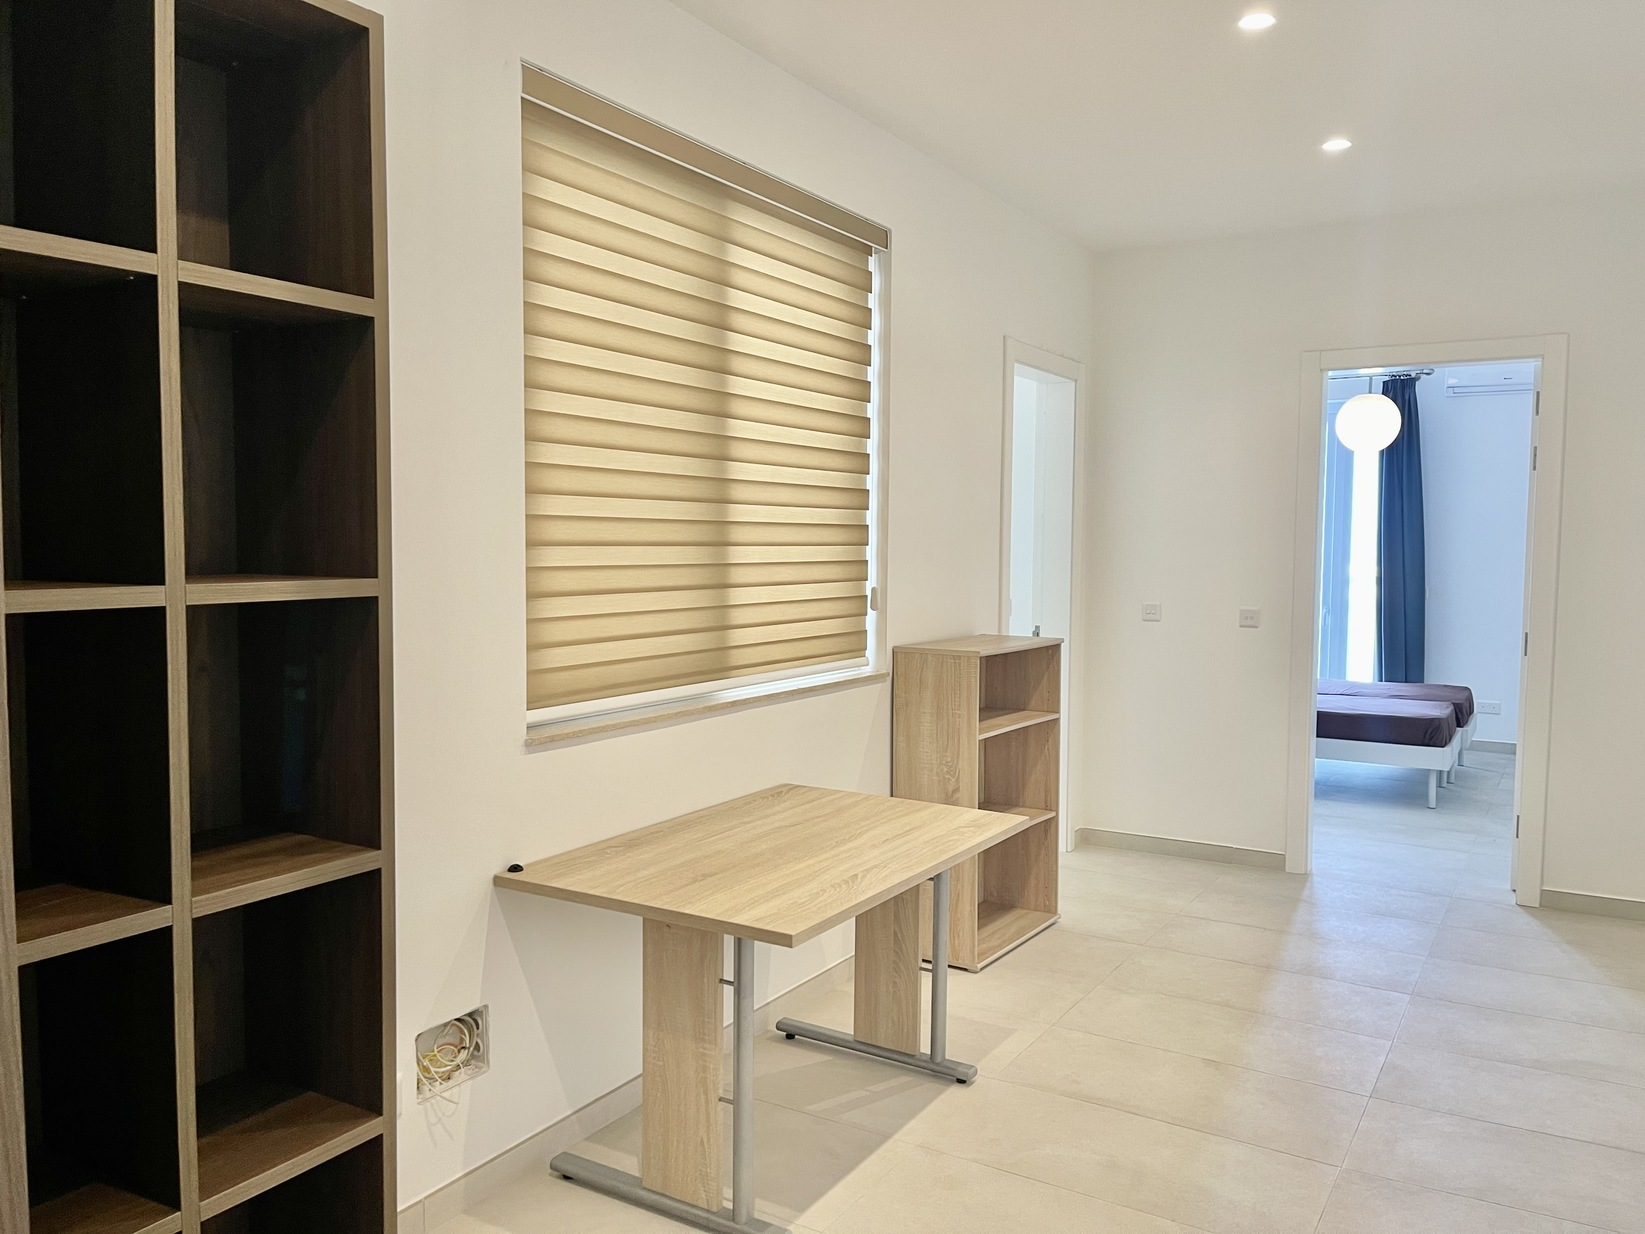 2 bed Apartment For Rent in Swieqi, Swieqi - thumb 15